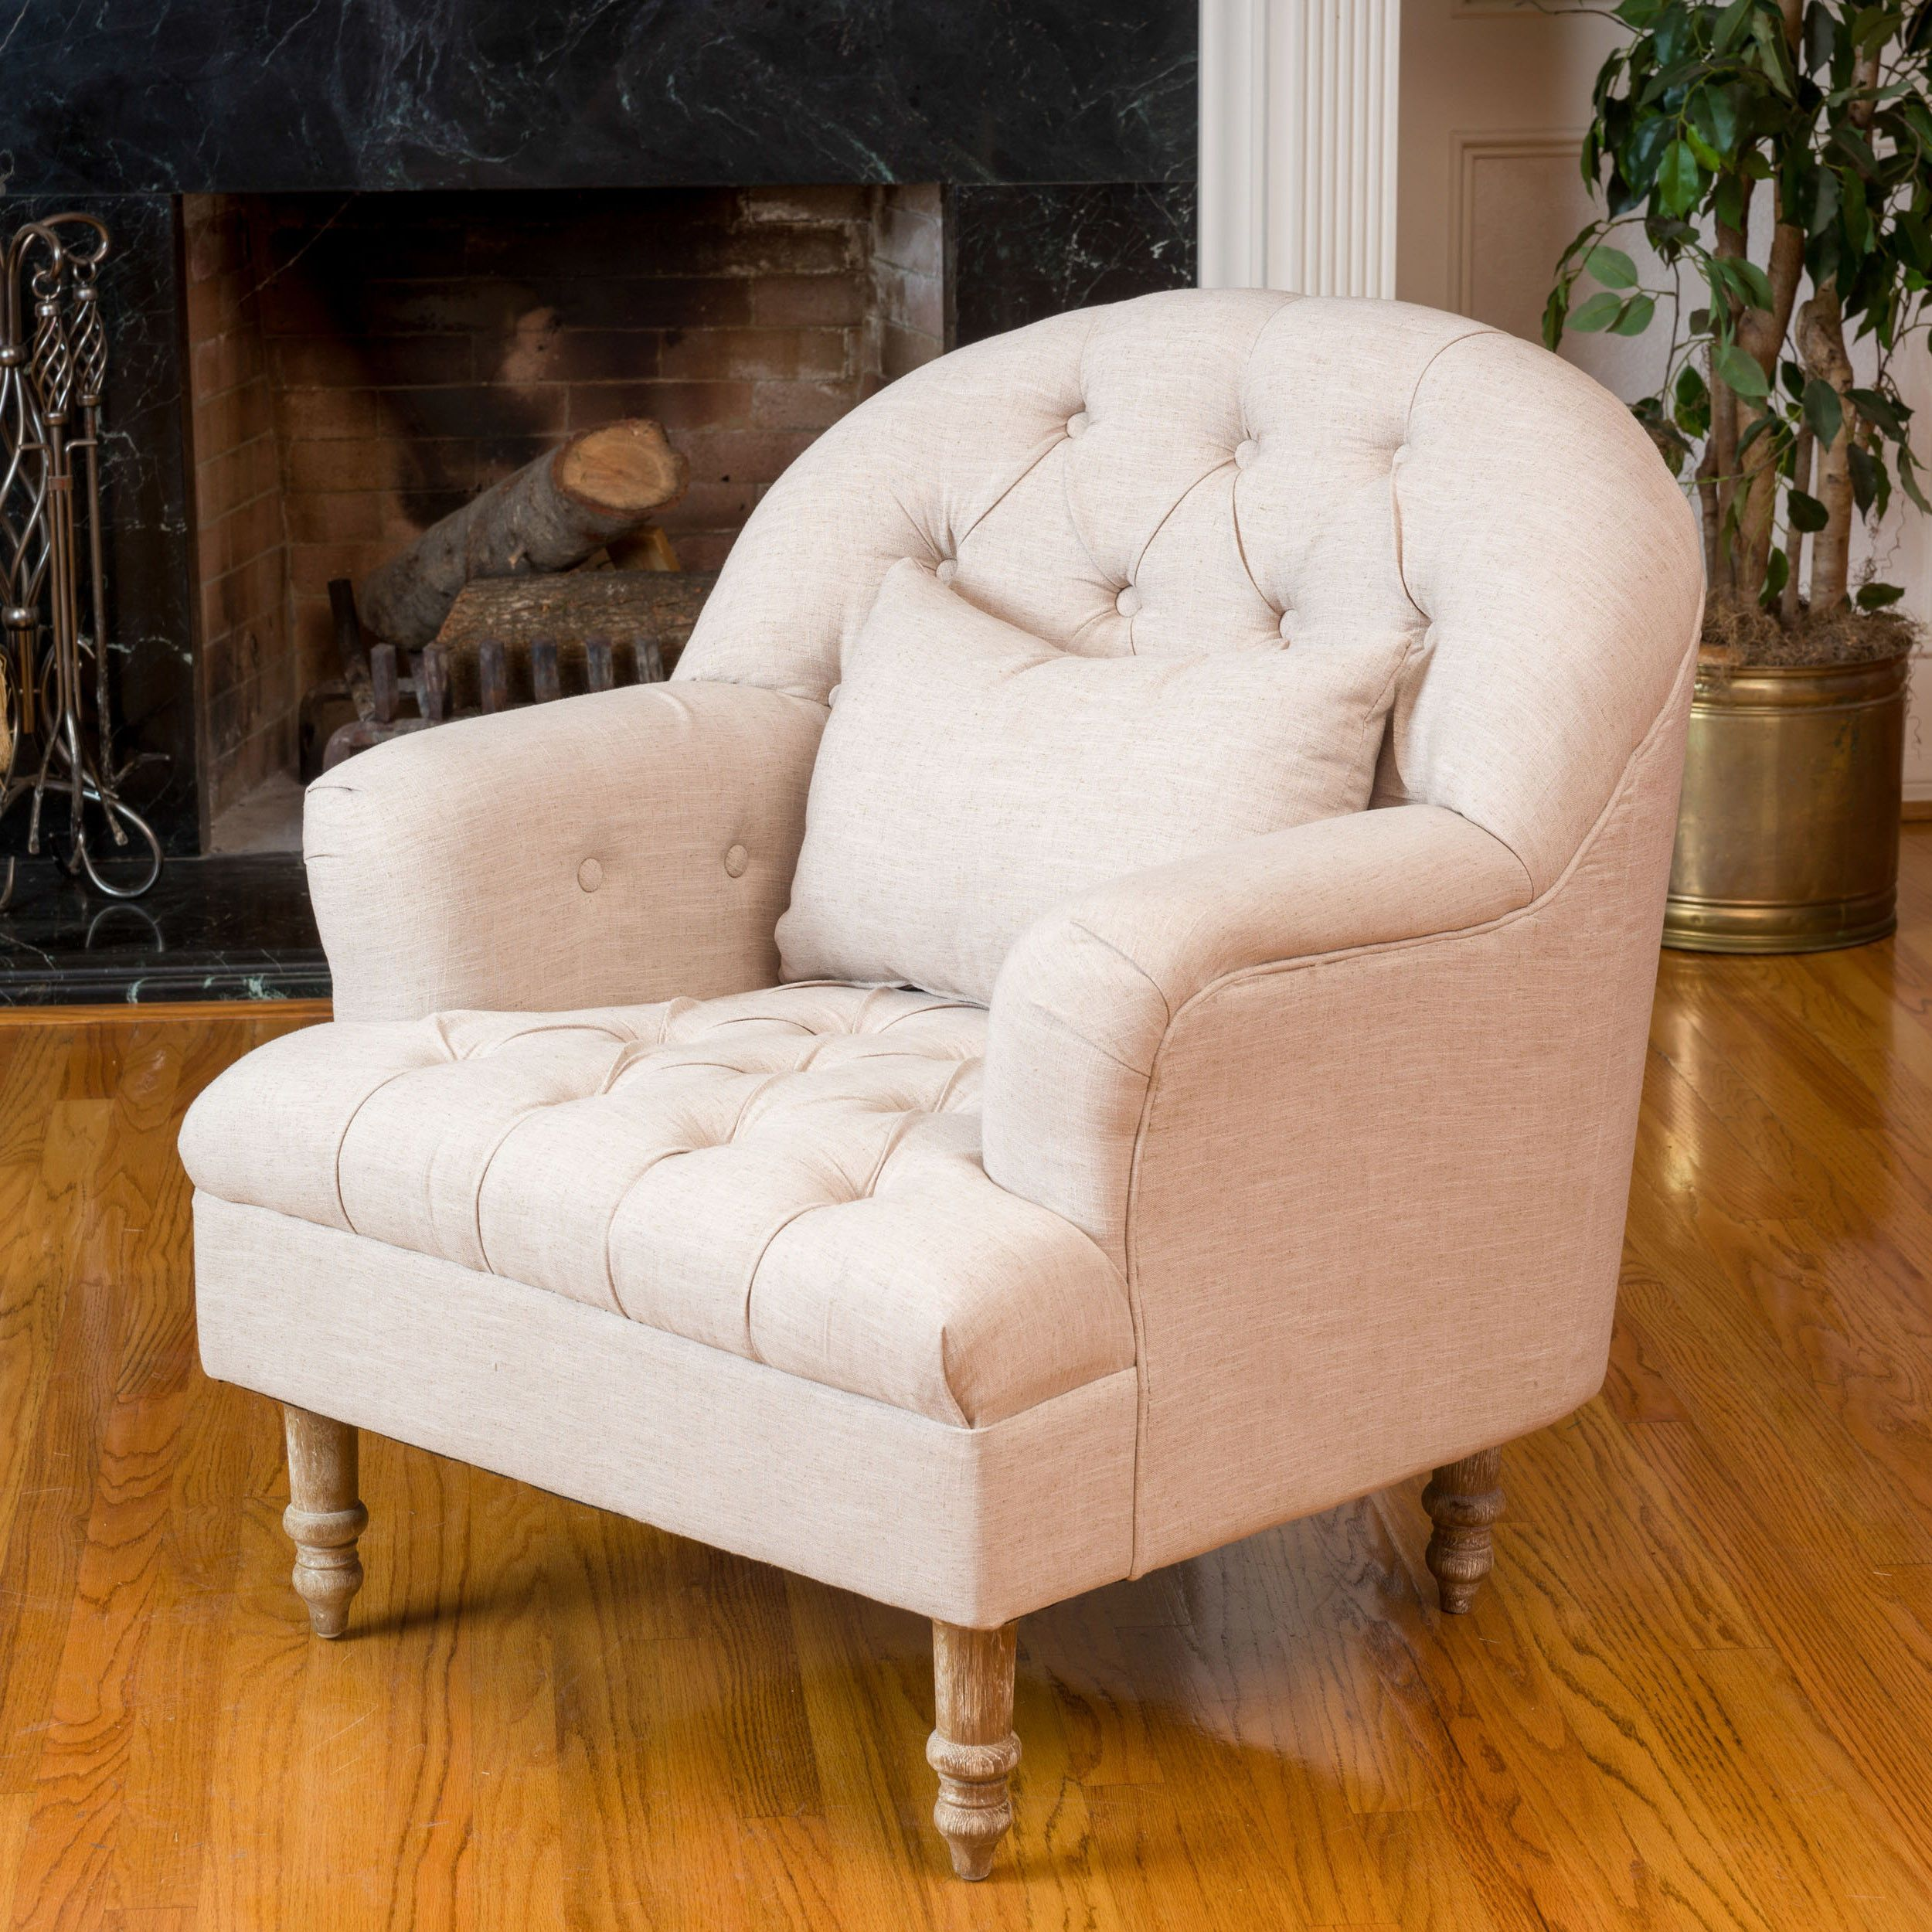 Shop wayfair for accent chairs to match every style and budget